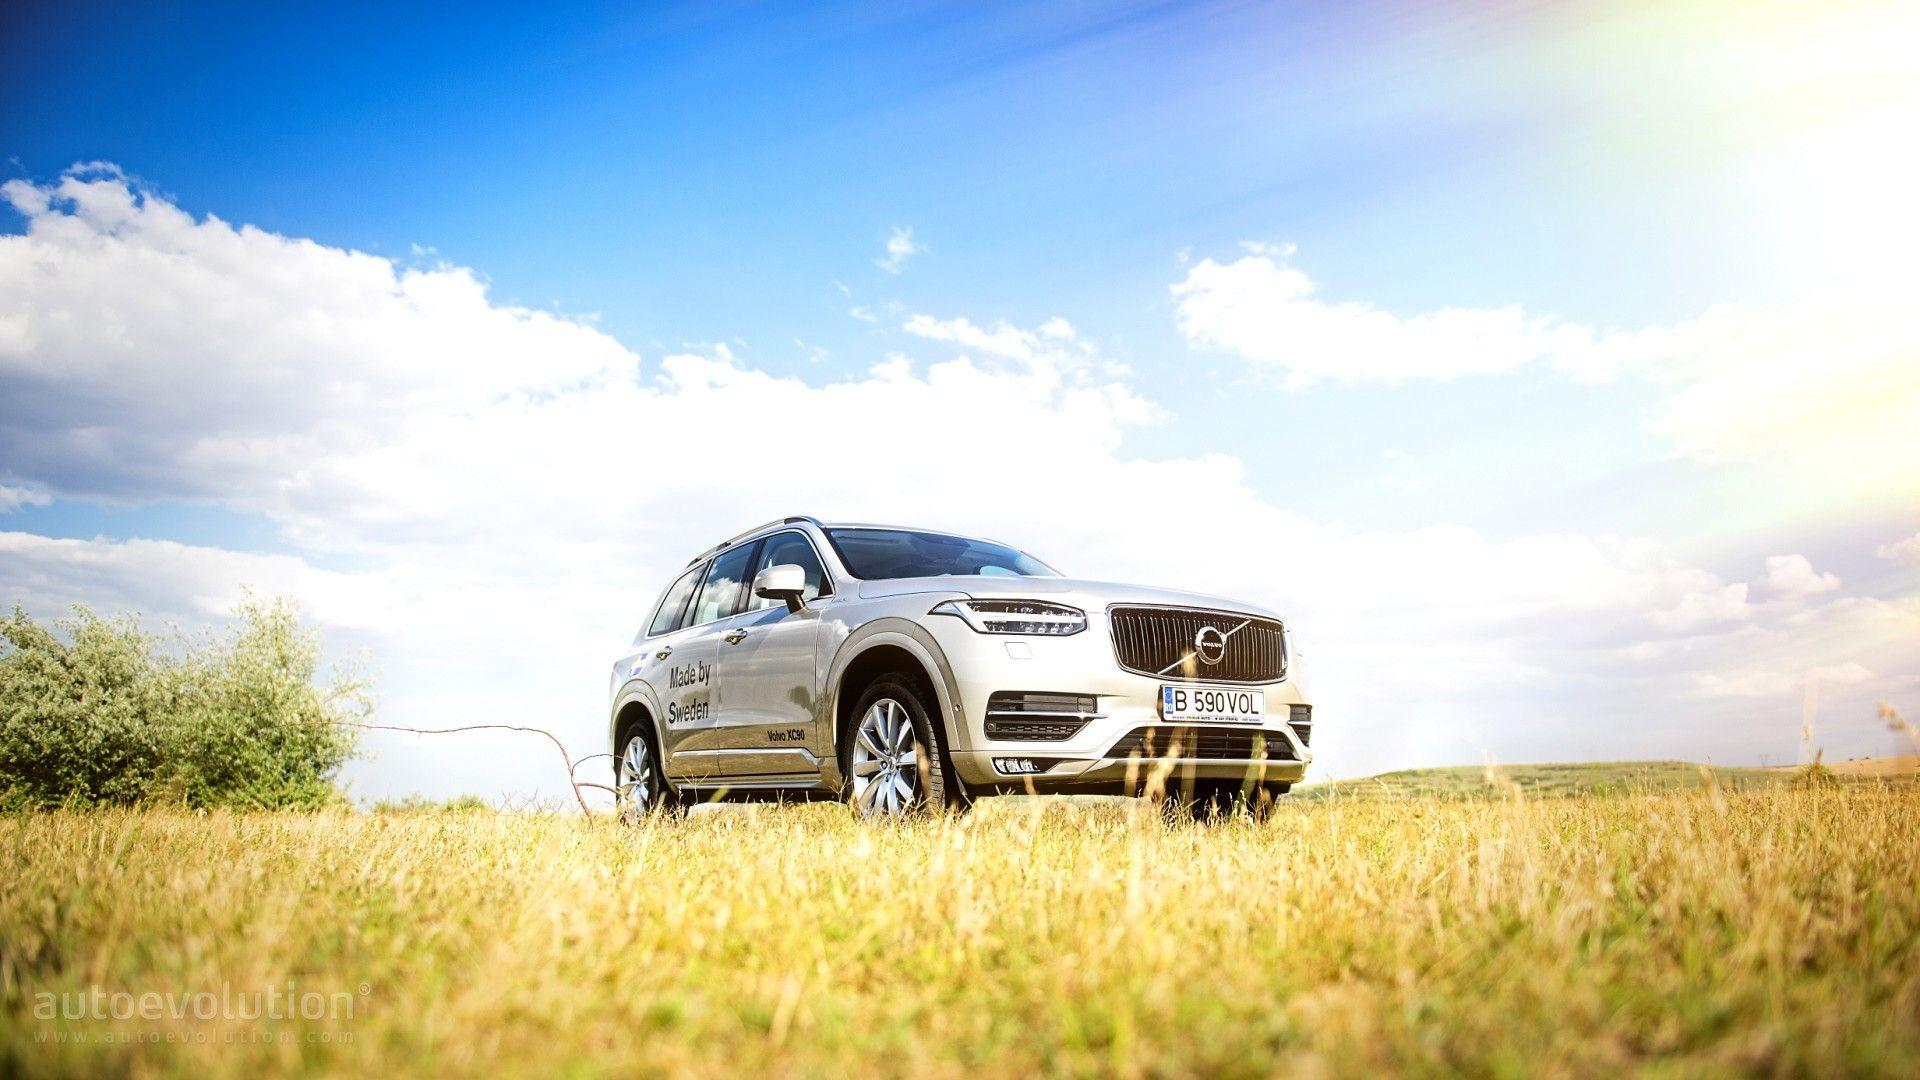 2016 Volvo XC90 HD Wallpapers: Thor 2.0 - autoevolution